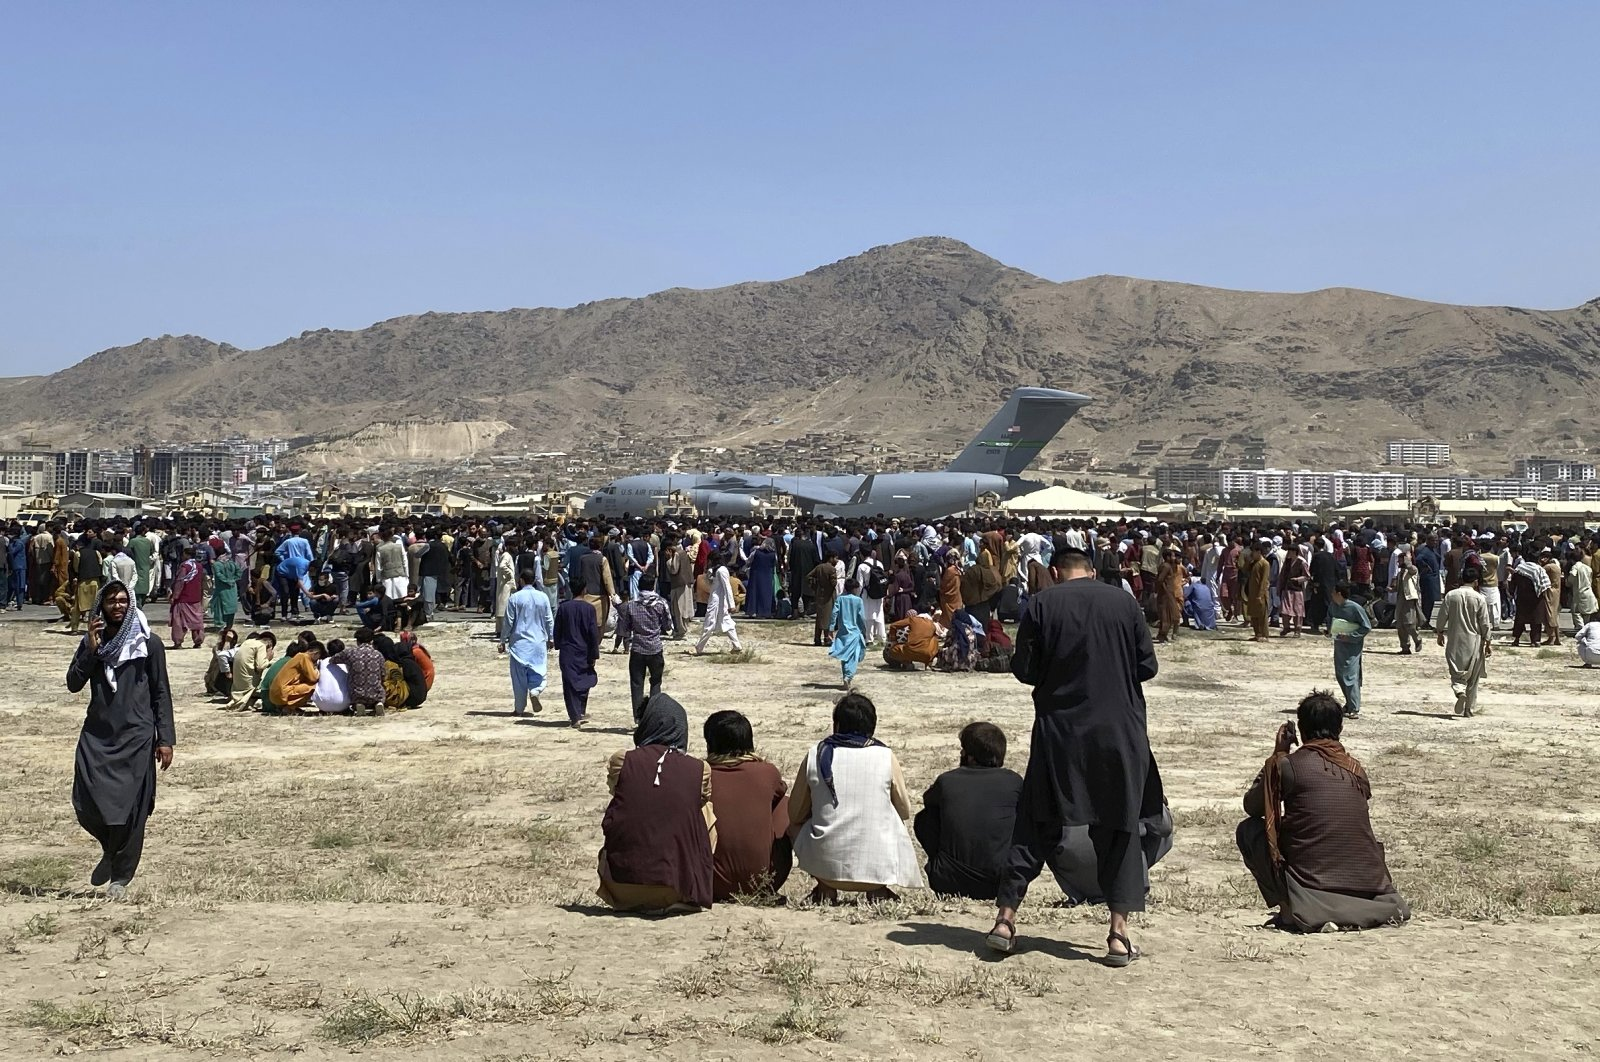 Hundreds of people gather near a U.S. Air Force C-17 transport plane at the perimeter of the international airport in Kabul, Afghanistan, Aug. 16, 2021. (AP Photo)